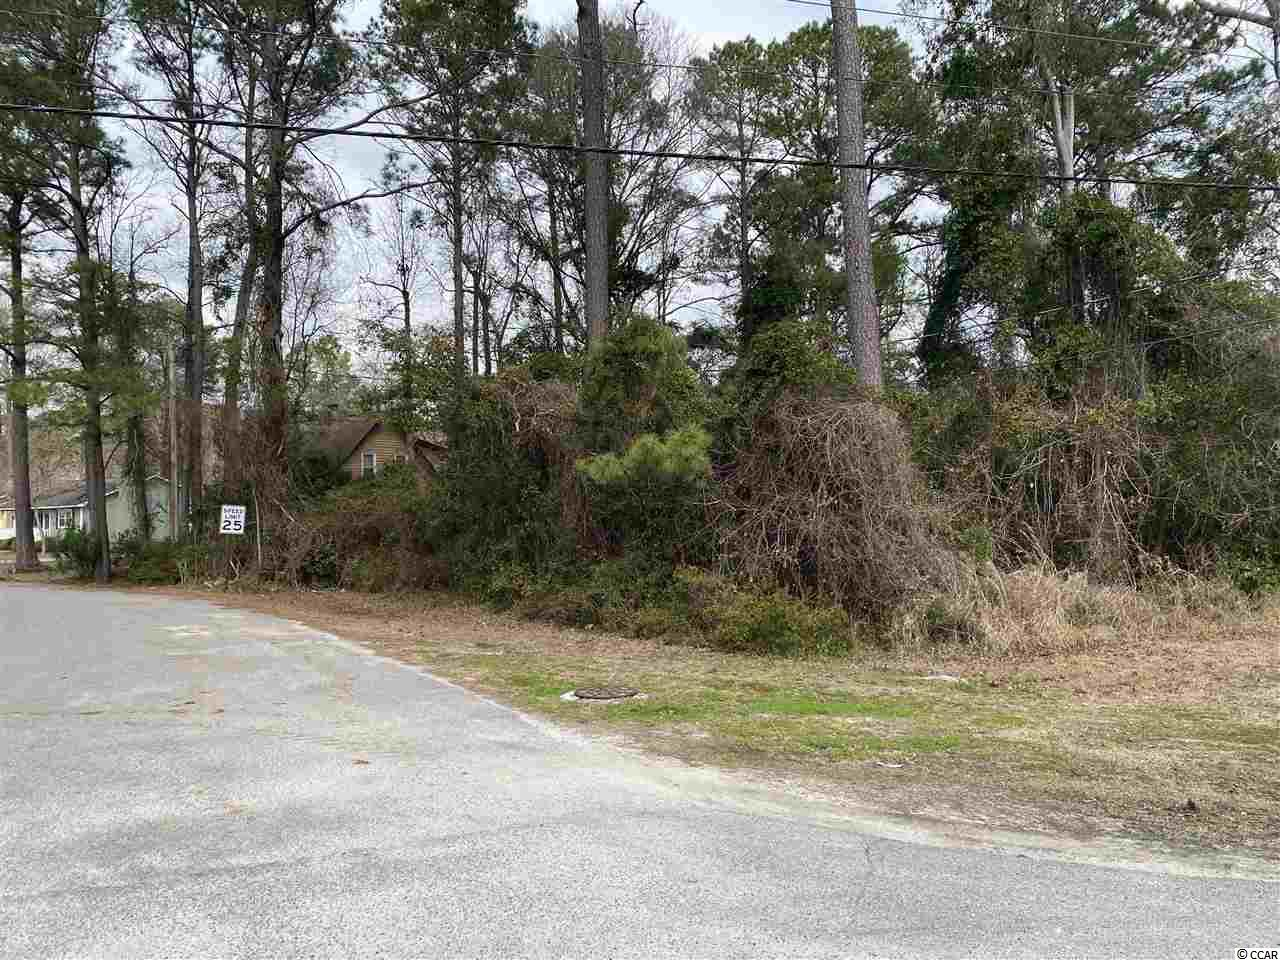 The ideal location to build your primary residence or beach house!  This corner  double lot in the family friendly Riverside community is close to the intercoastal waterway, multiple boat launches, minutes to Little River Inlet,  waterfront restaurants, Cherry Grove Pier and only a short golf cart ride to the beach!  The lot is located on the corner of Little River Neck Road and 26th Avenue North.  No timeframe to build with the builder of your choice!  No home owners association bring your boat and be in the water in minutes! Contact your Realtor for more information today!